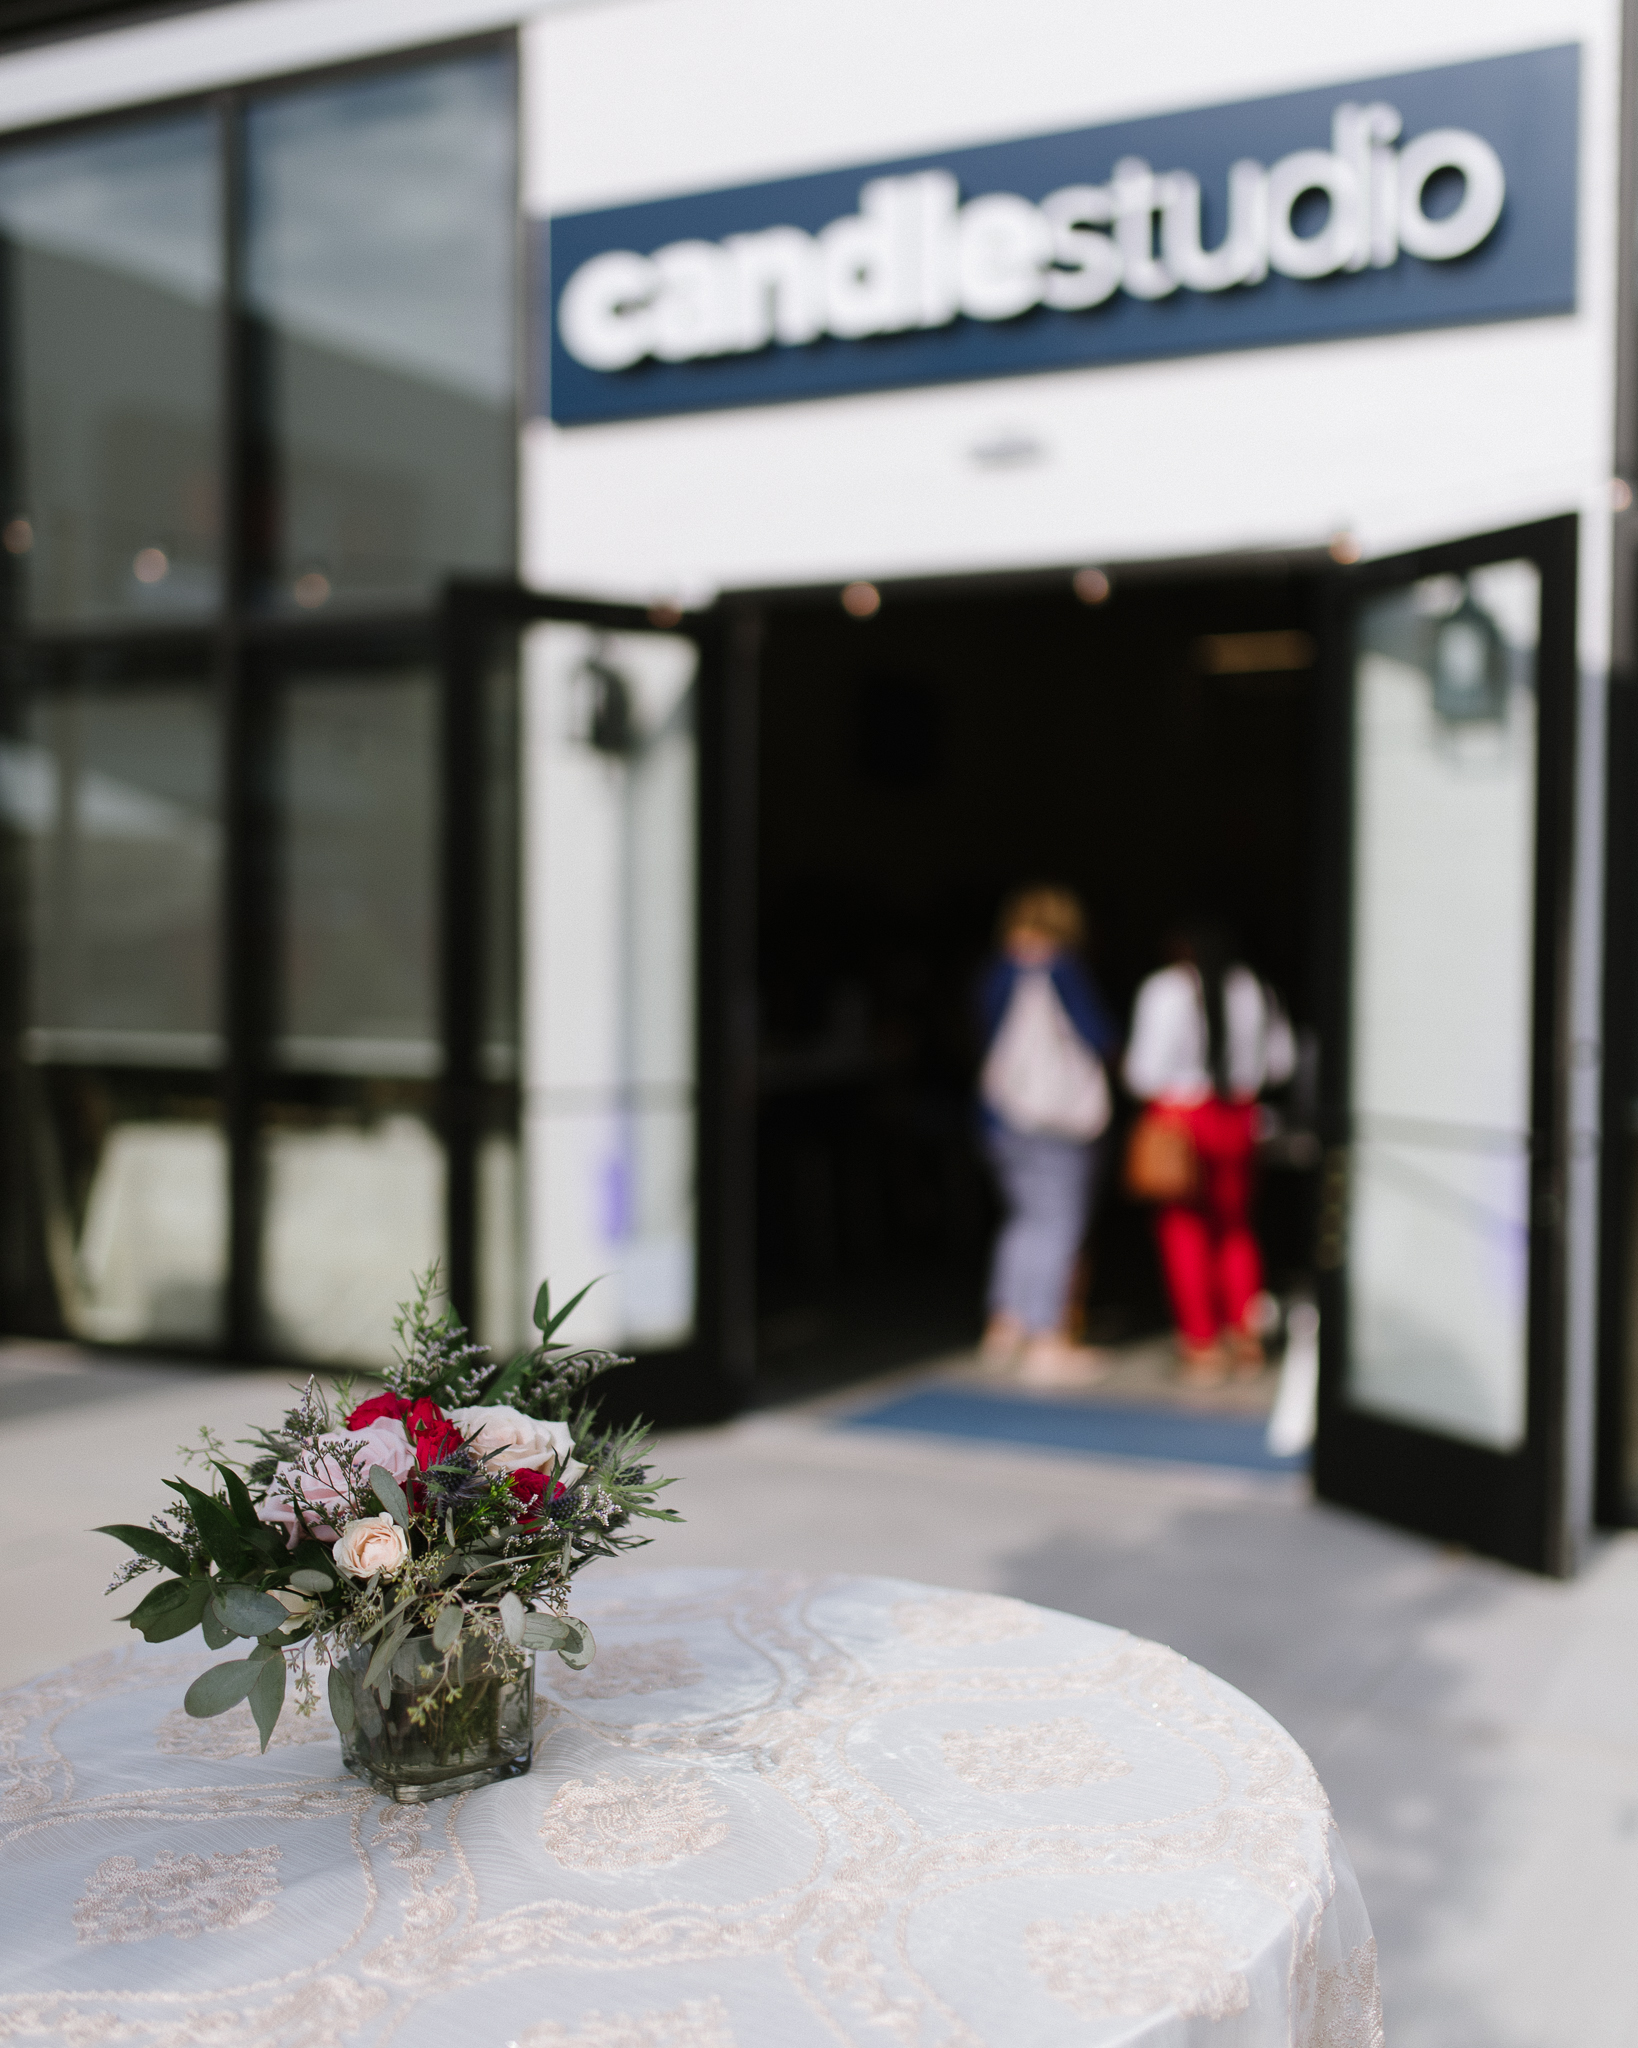 Mwypasek_Thurs_Therapy_The Candle Store_286_20190711_MWP_1635.jpg